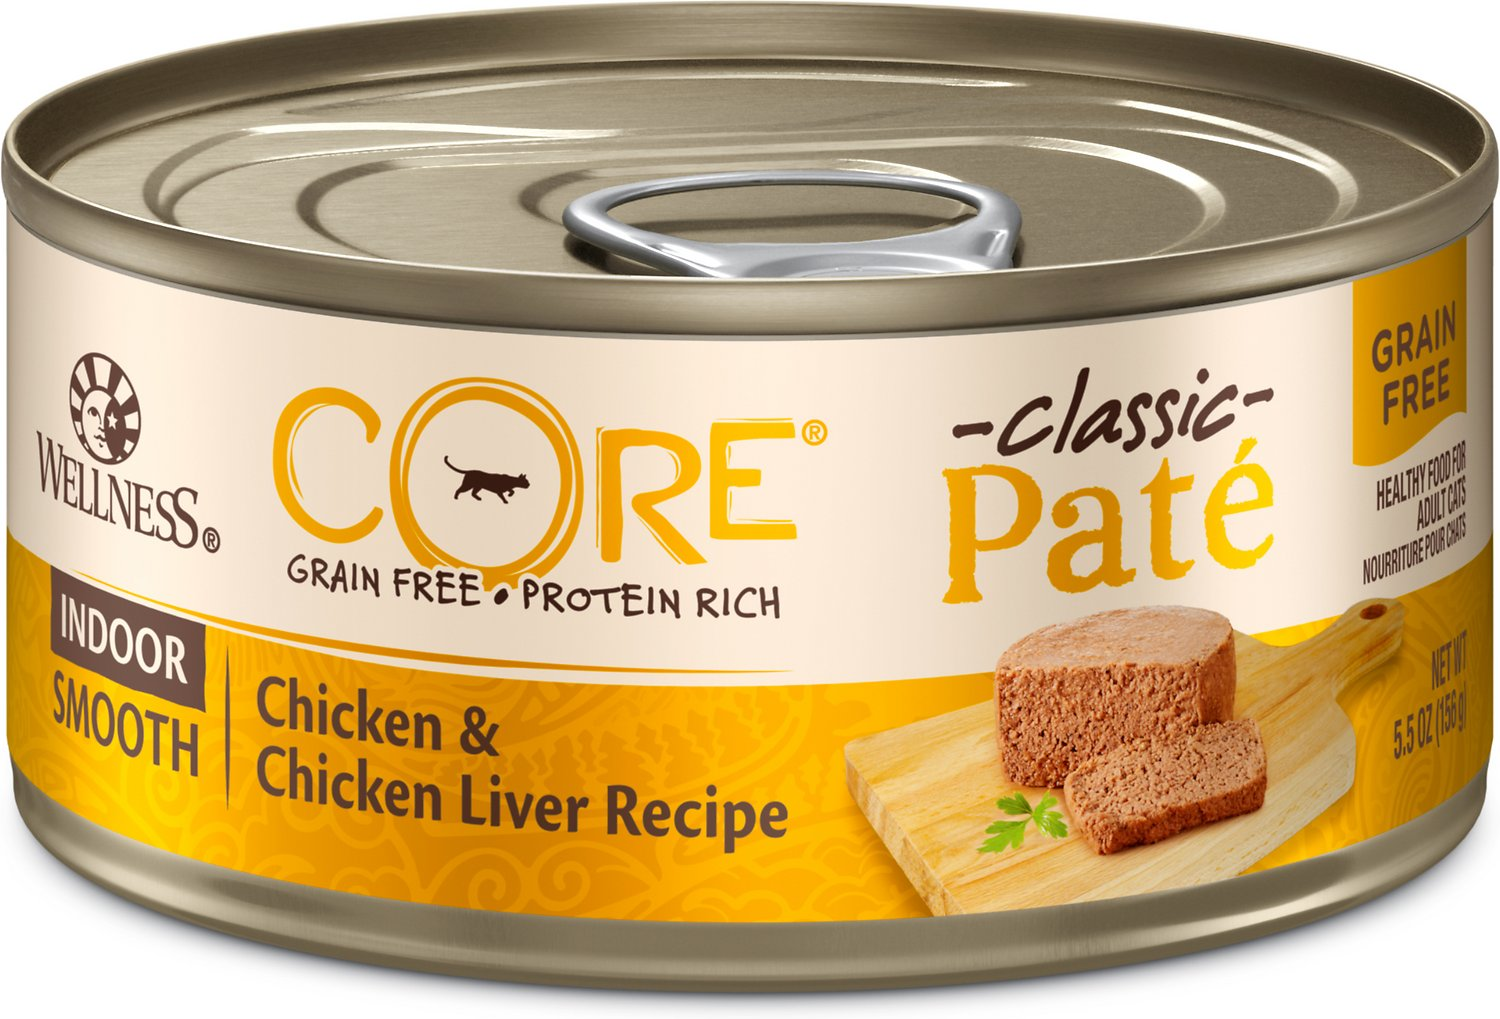 Wellness CORE Grain-Free Indoor Chicken & Chicken Liver Recipe Canned Cat Food, 5.5-oz